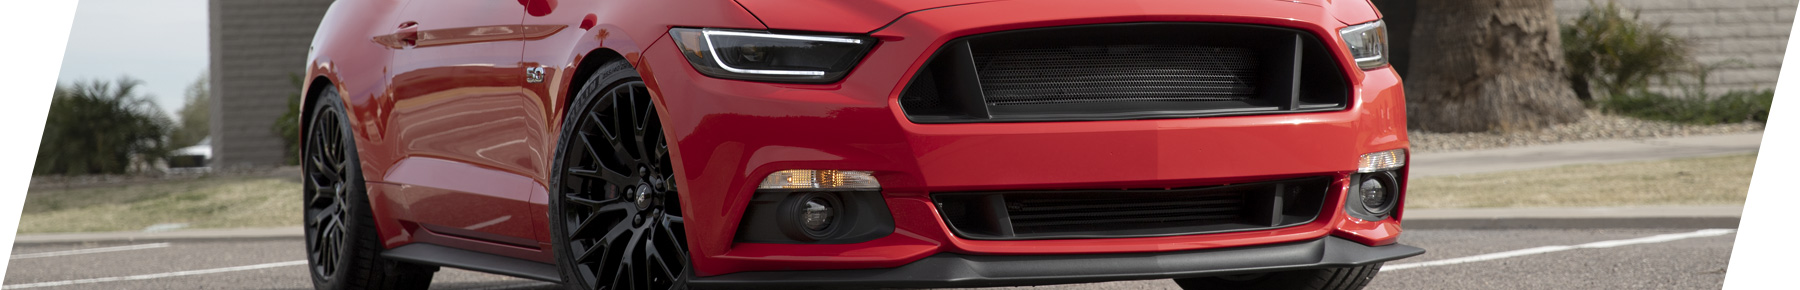 2015-2020 Mustang Exterior Parts Upgrades